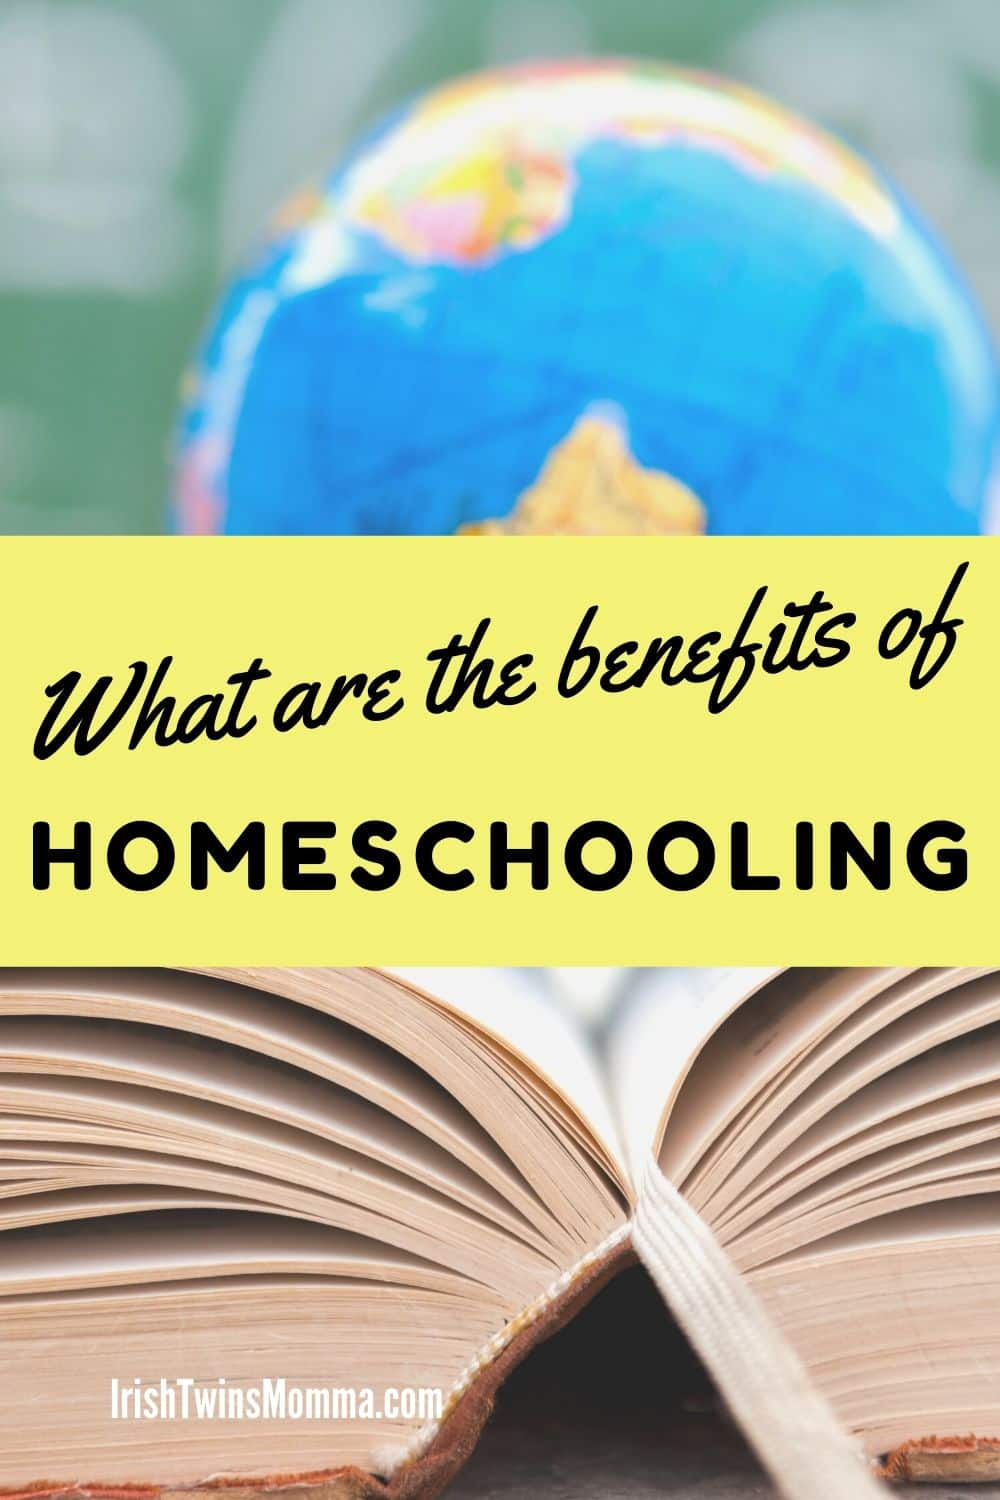 The ultimate guide to homeschooling shares with you what homeschooling is, the benefits of homeschooling, resources for homeschooling, and how to start home schooling.  Everything you need to know to get started and be successful. via @irishtwinsmom11